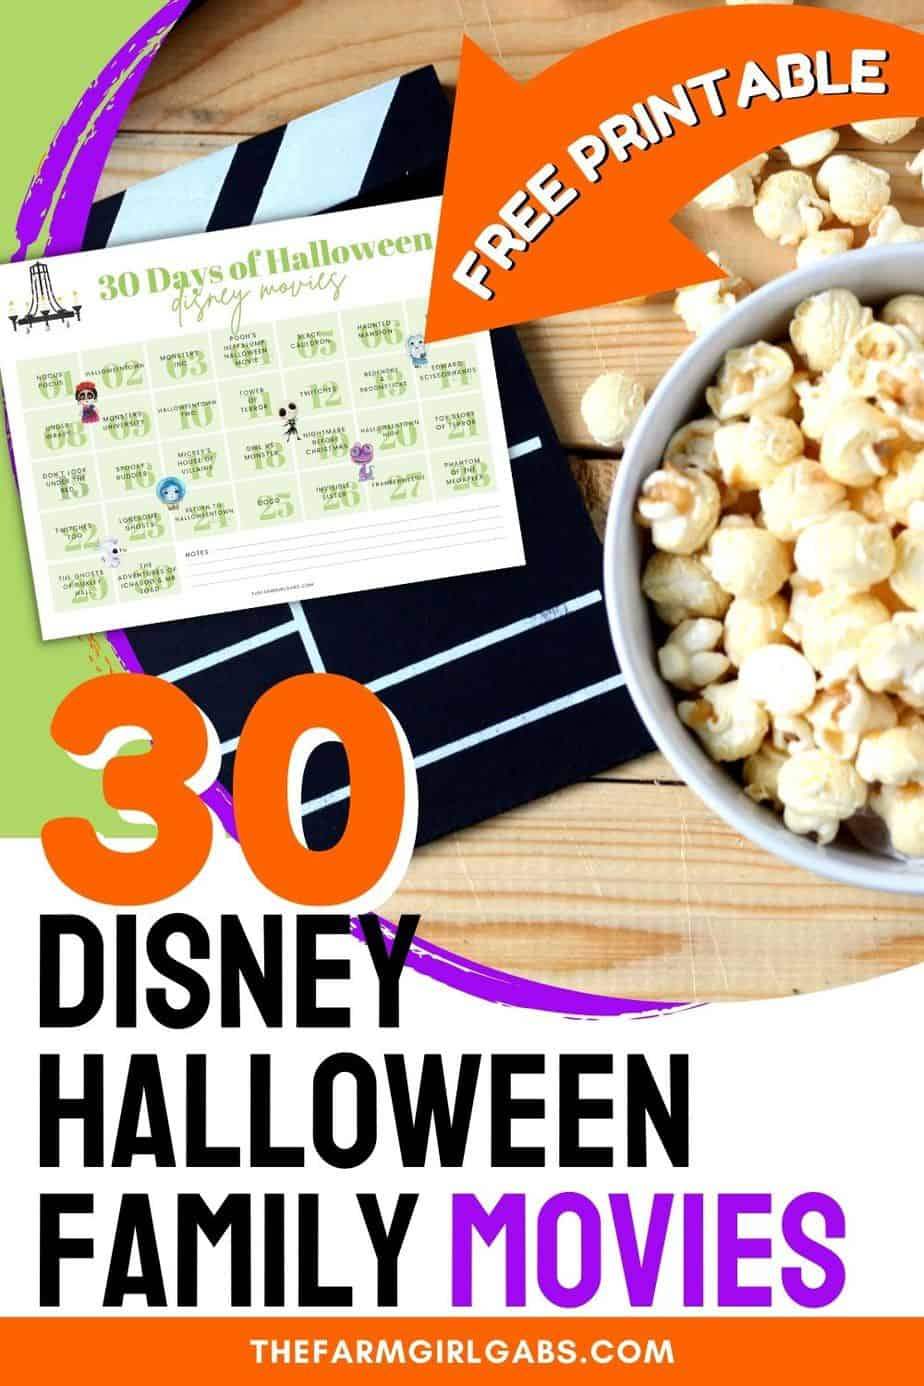 Disney Halloween movies are the ultimate treat this time of year. We've compiled a list for 30 Disney Movies for families to watch this October. Grab some popcorn and plan the Ultimate Disney movie night with your family. Scroll down for a free printable Disney movie guide too.